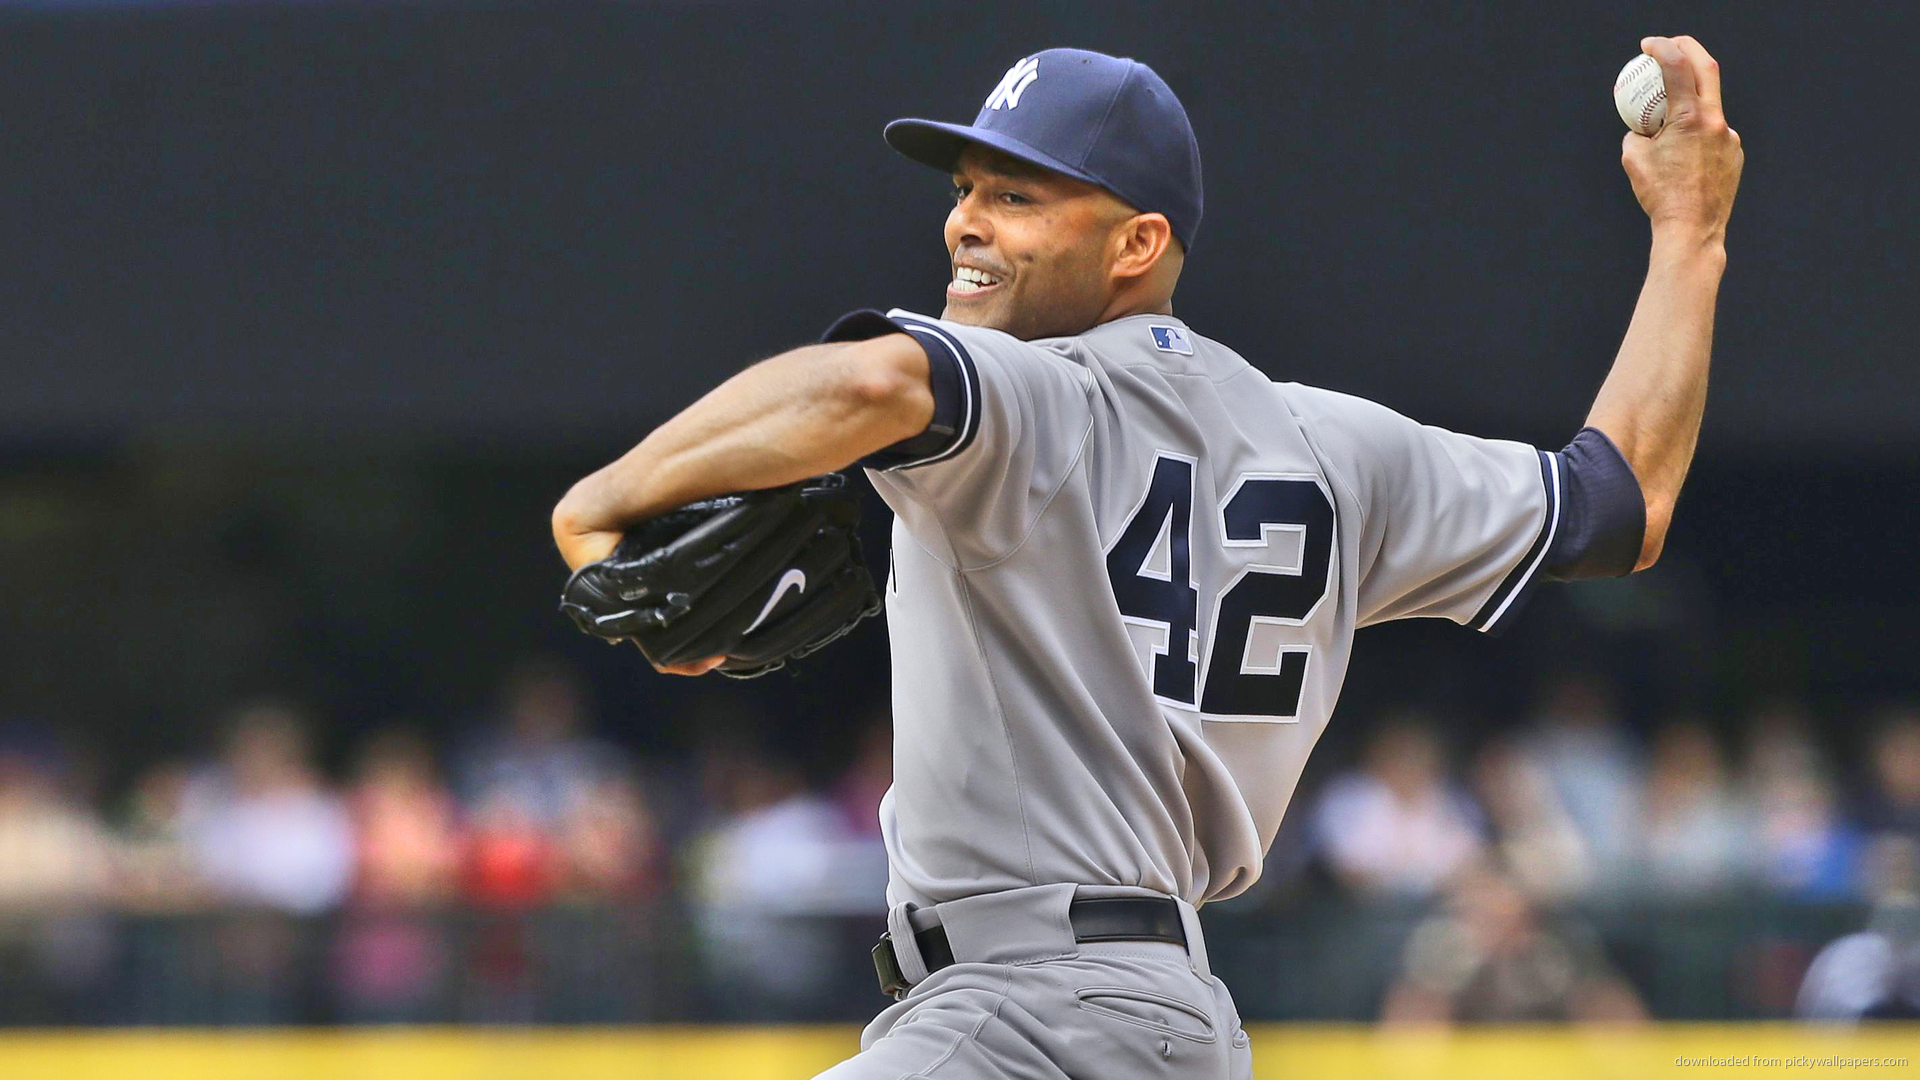 Mariano Rivera wallpaper - 995906